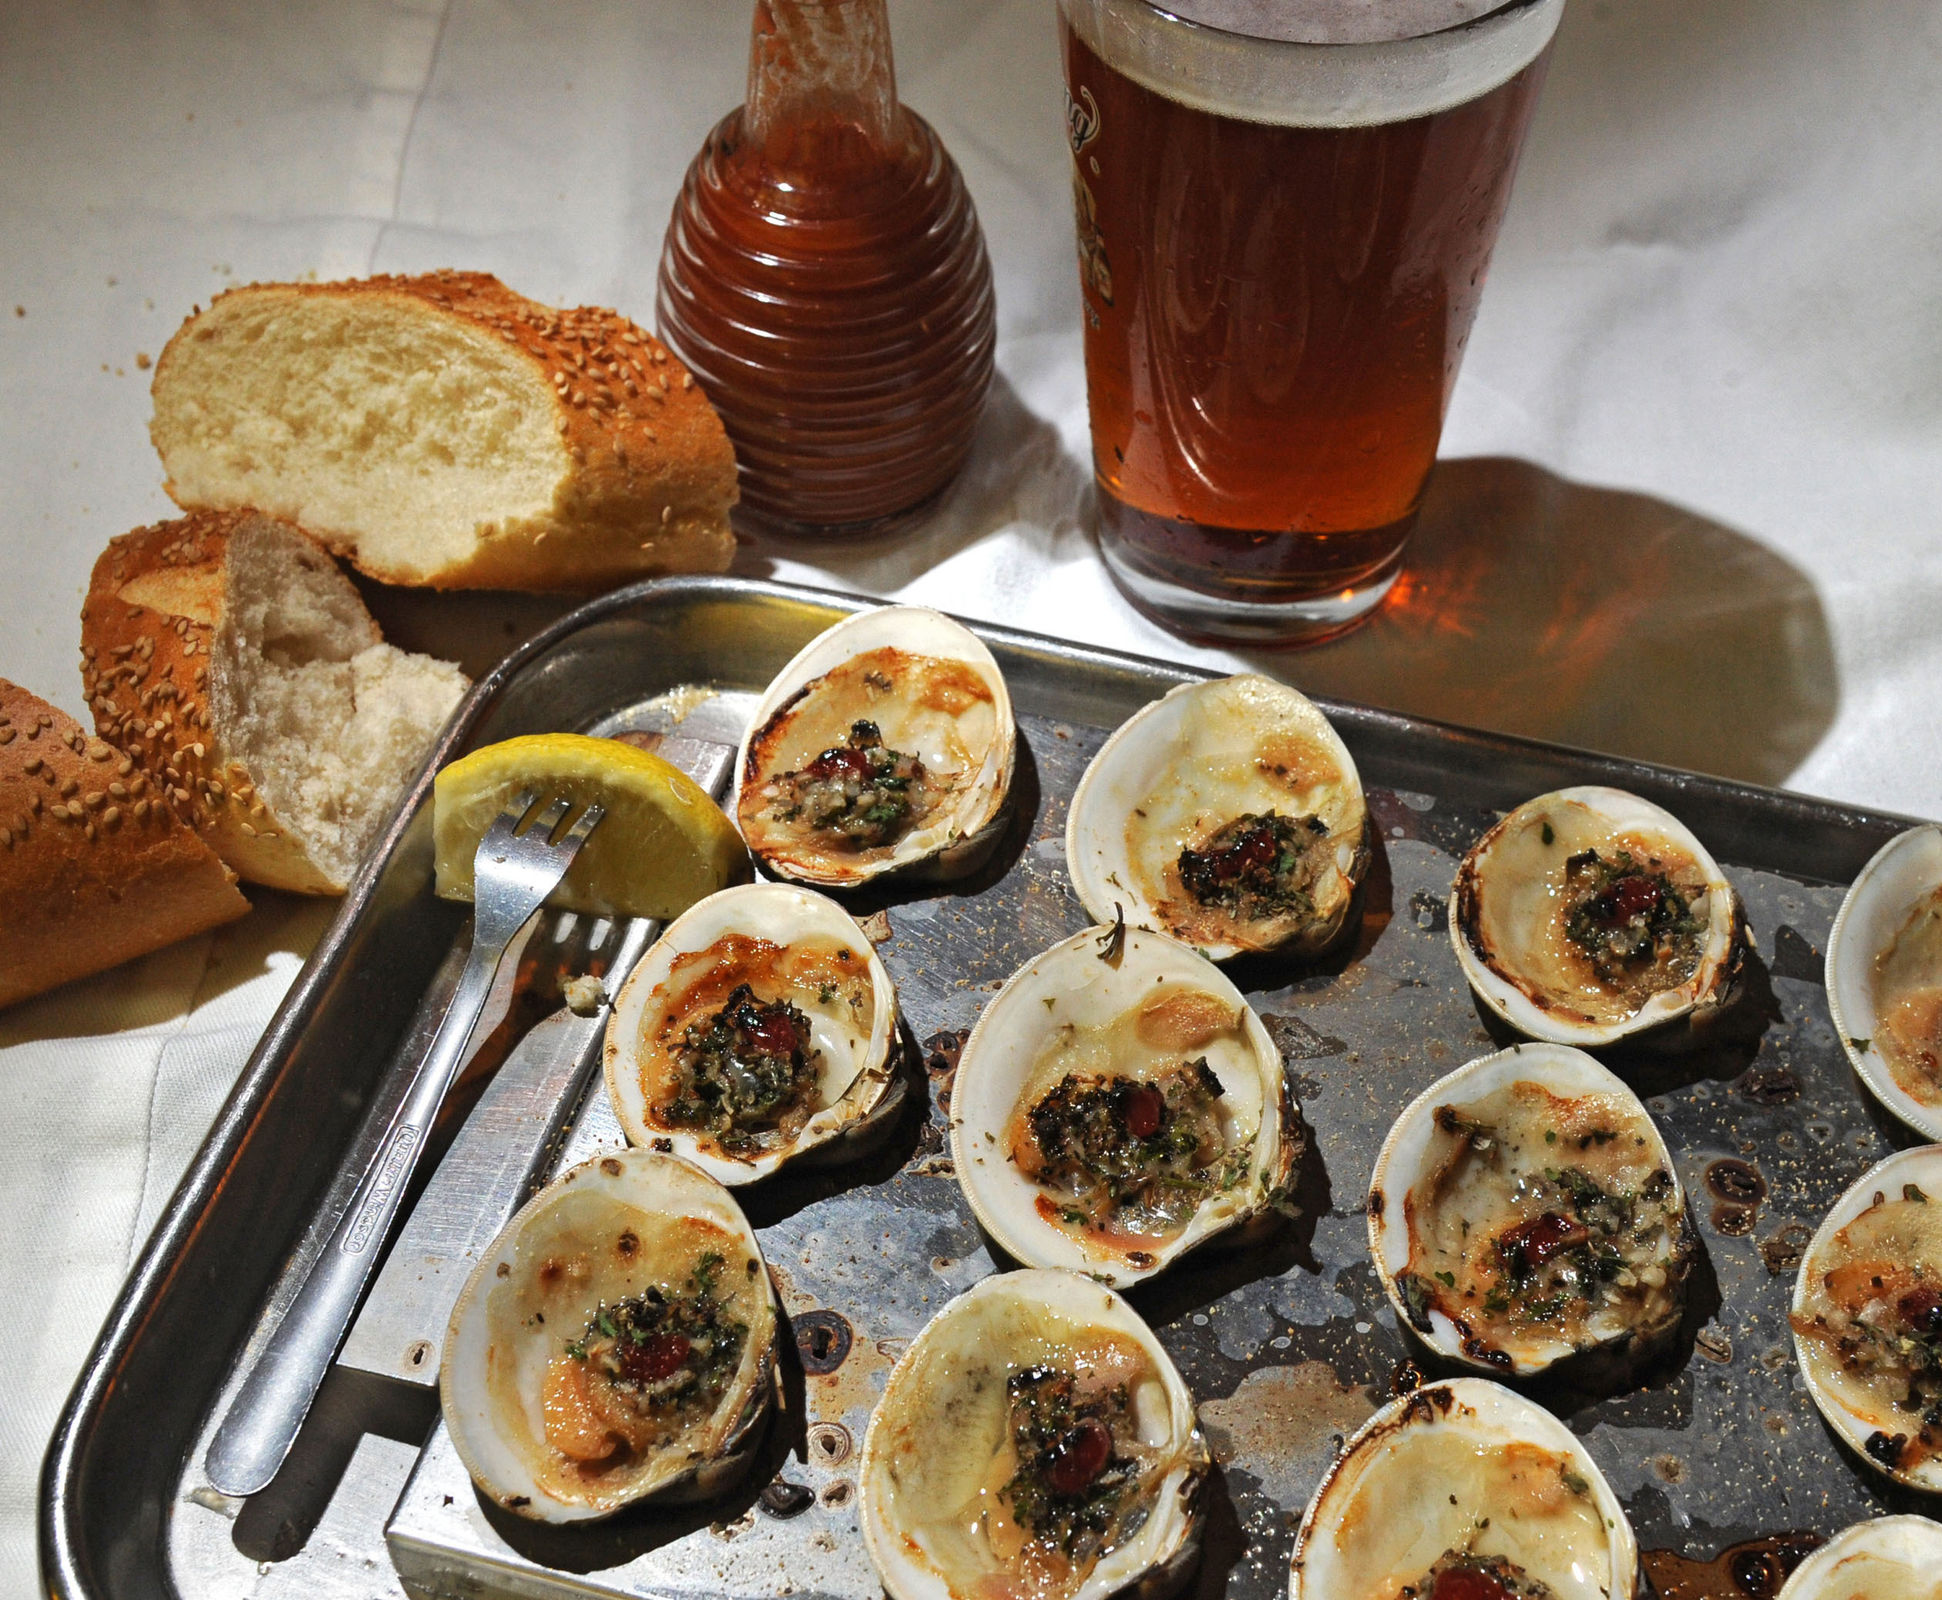 The house broiled clams from The Clam Tavern. (CLEM MURRAY / Staff Photographer)